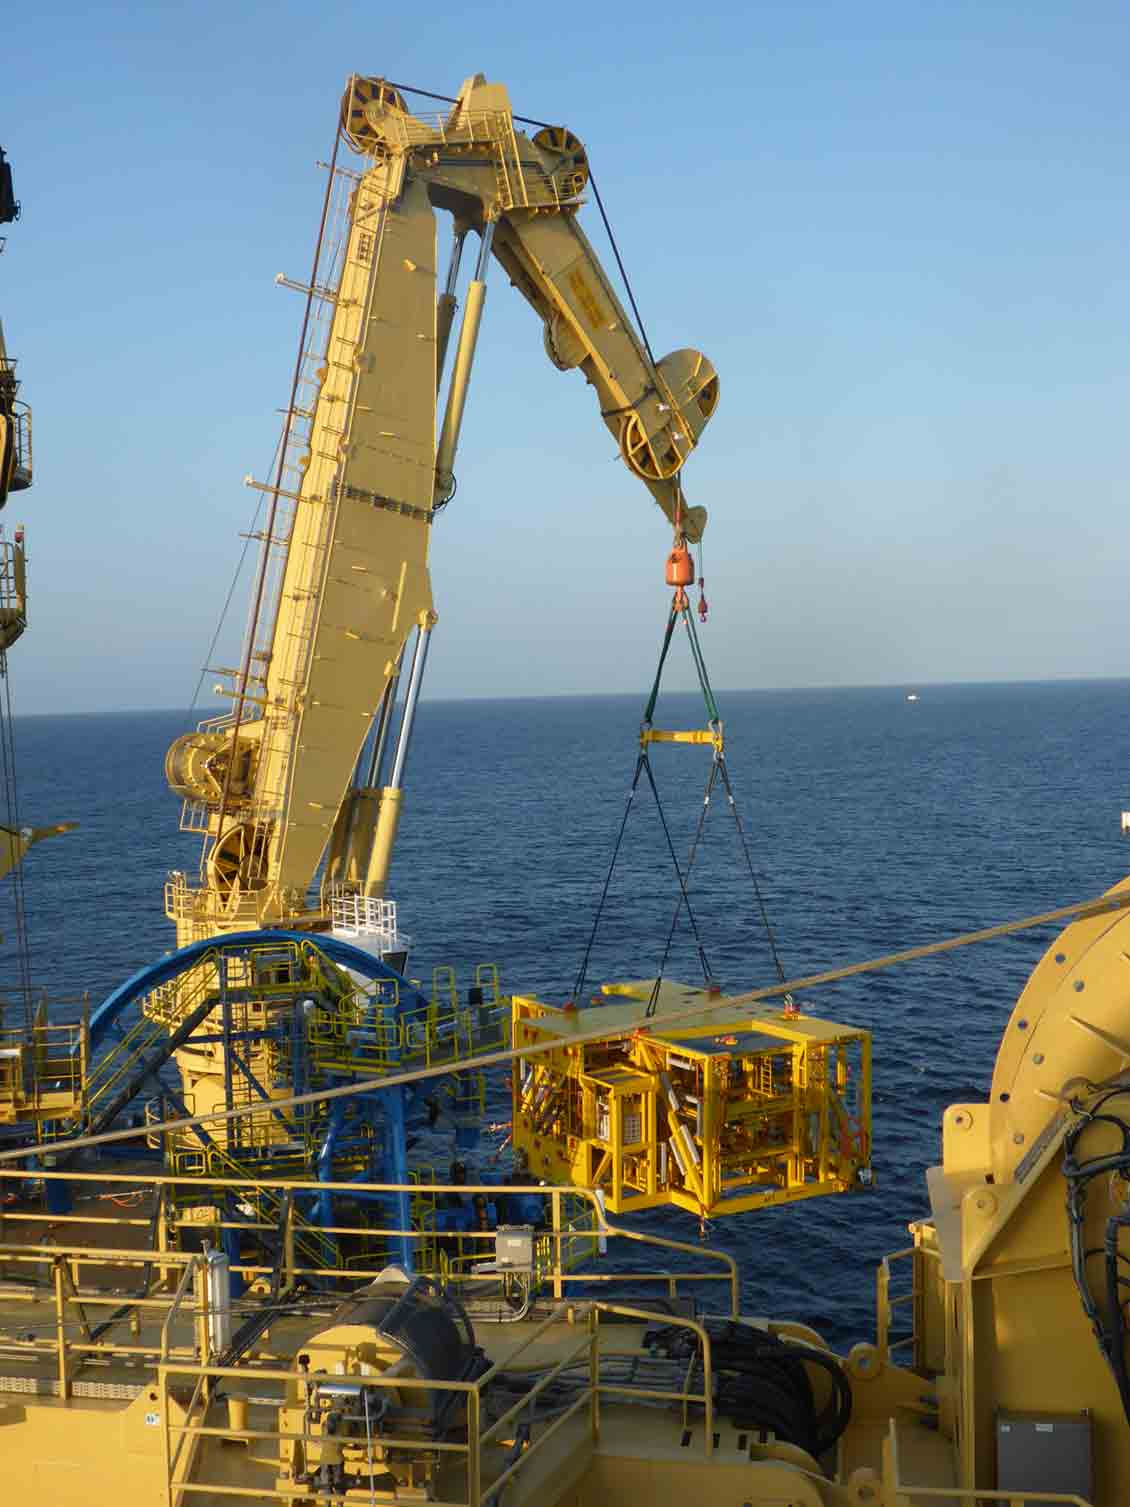 A crane lifting subsea equipment off of a platform and lowering it into the water.